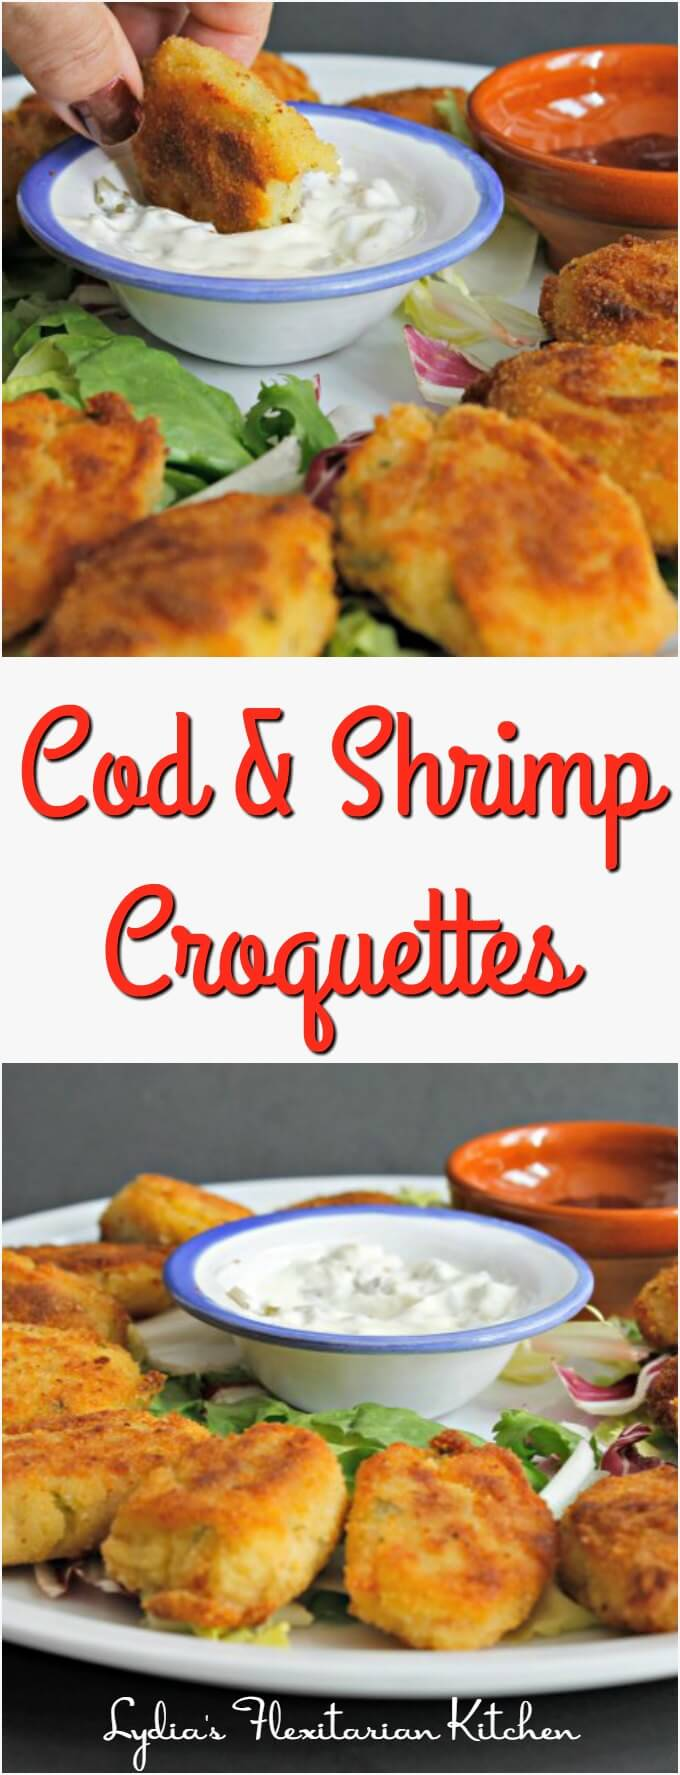 Cod and Shrimp Croquetttes ~ #TheRecipeReDux ~ Lydia's Flexitarian Kitchen